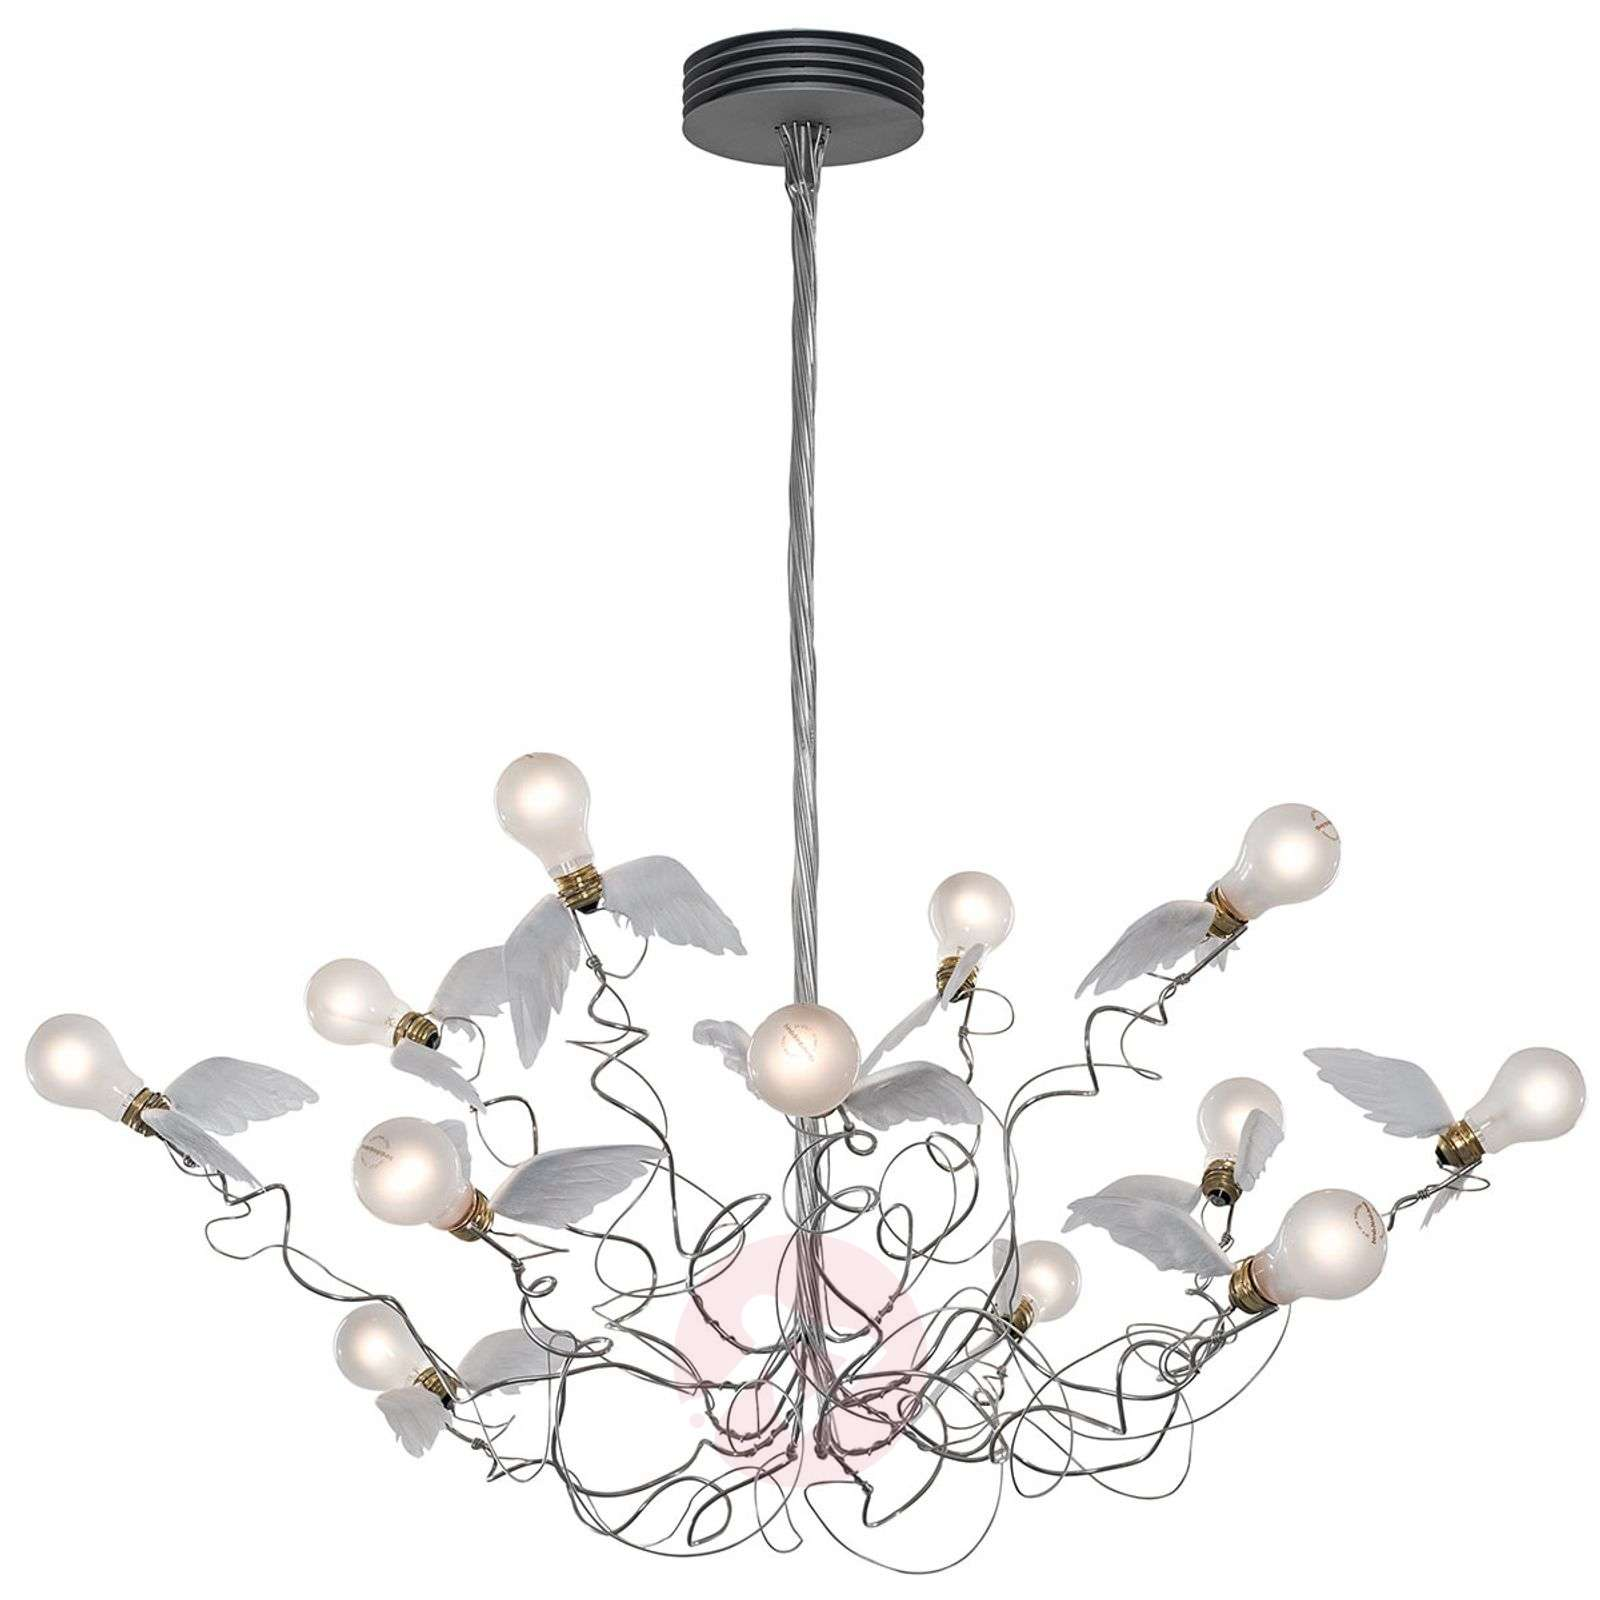 Birdie hanging light with winged bulbs-5026104X-01